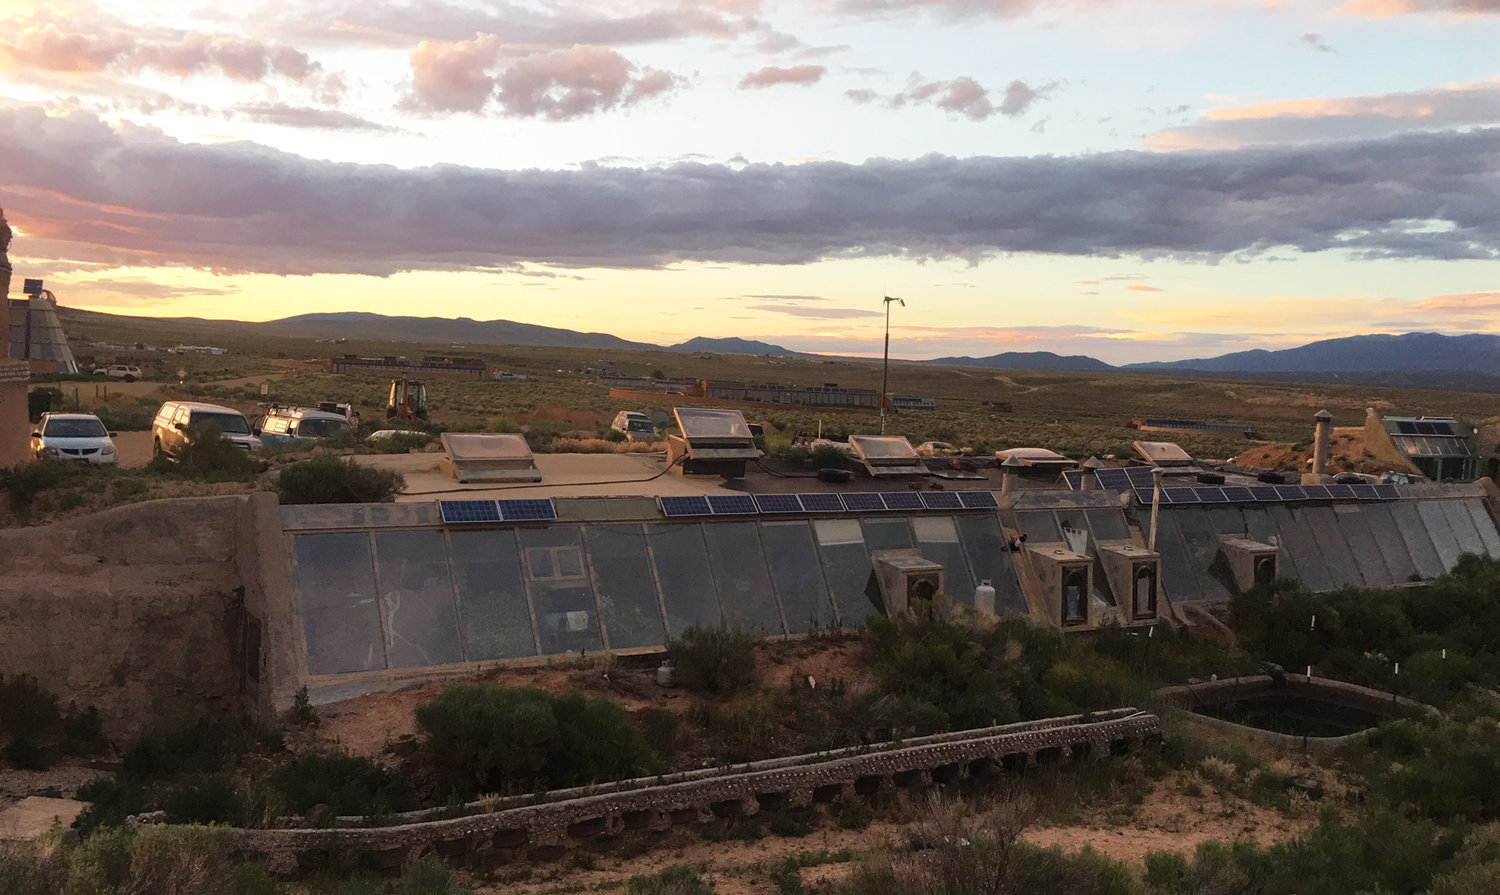 The view at the Youth Earthship Academy in New Mexico.